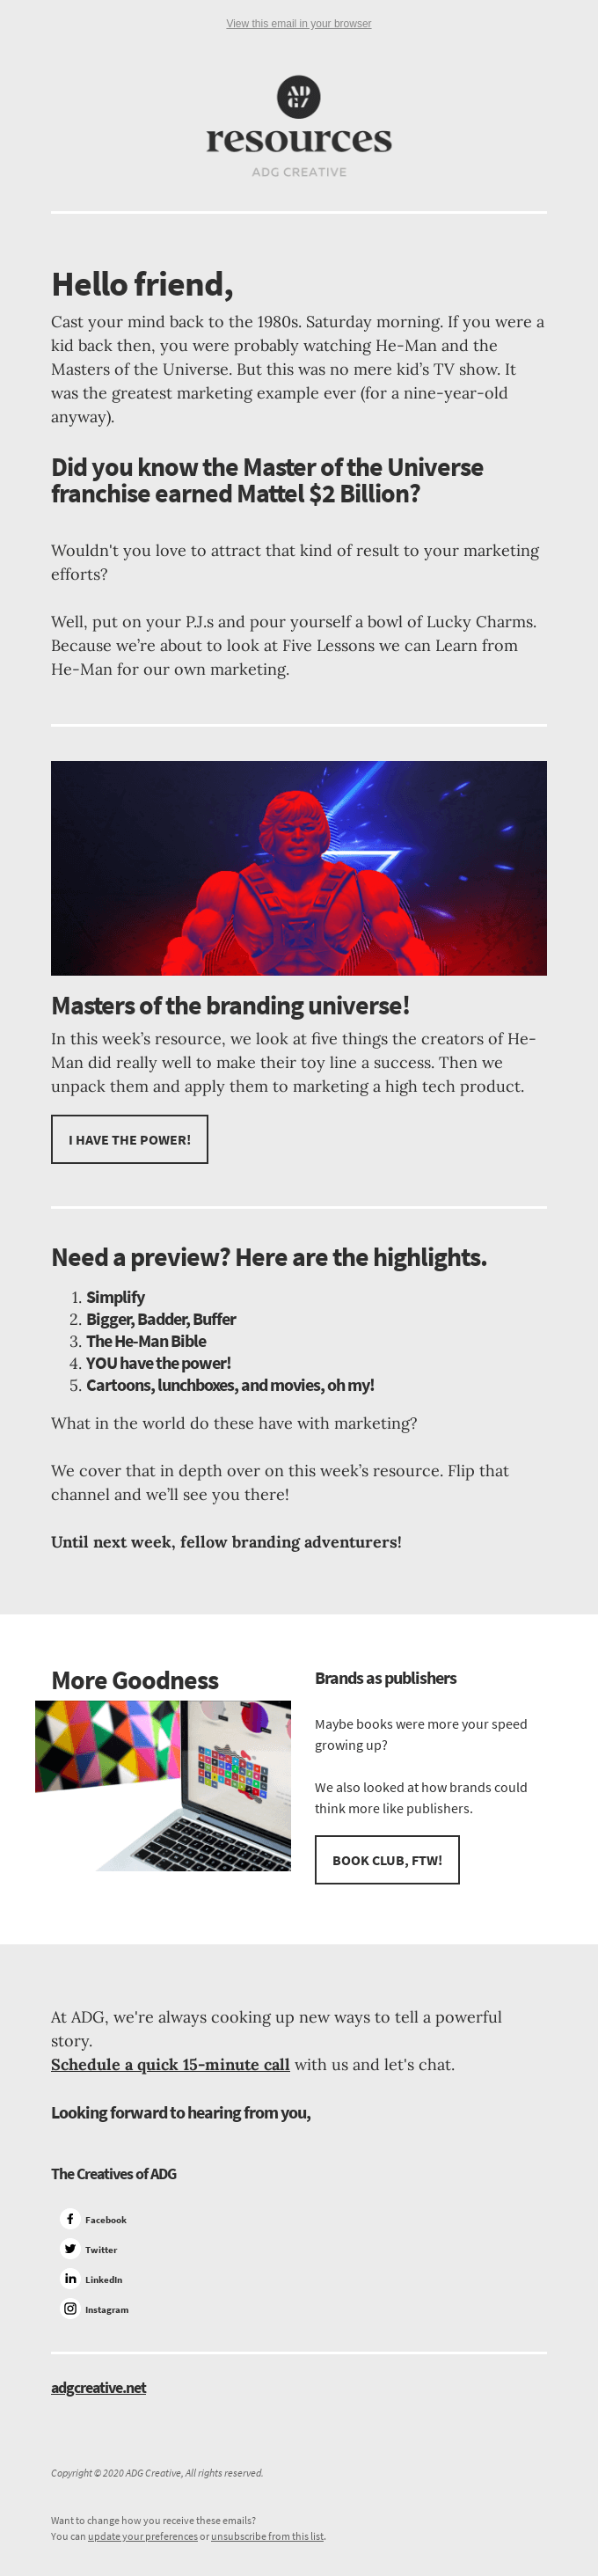 Masters of the Branding Universe! 💪